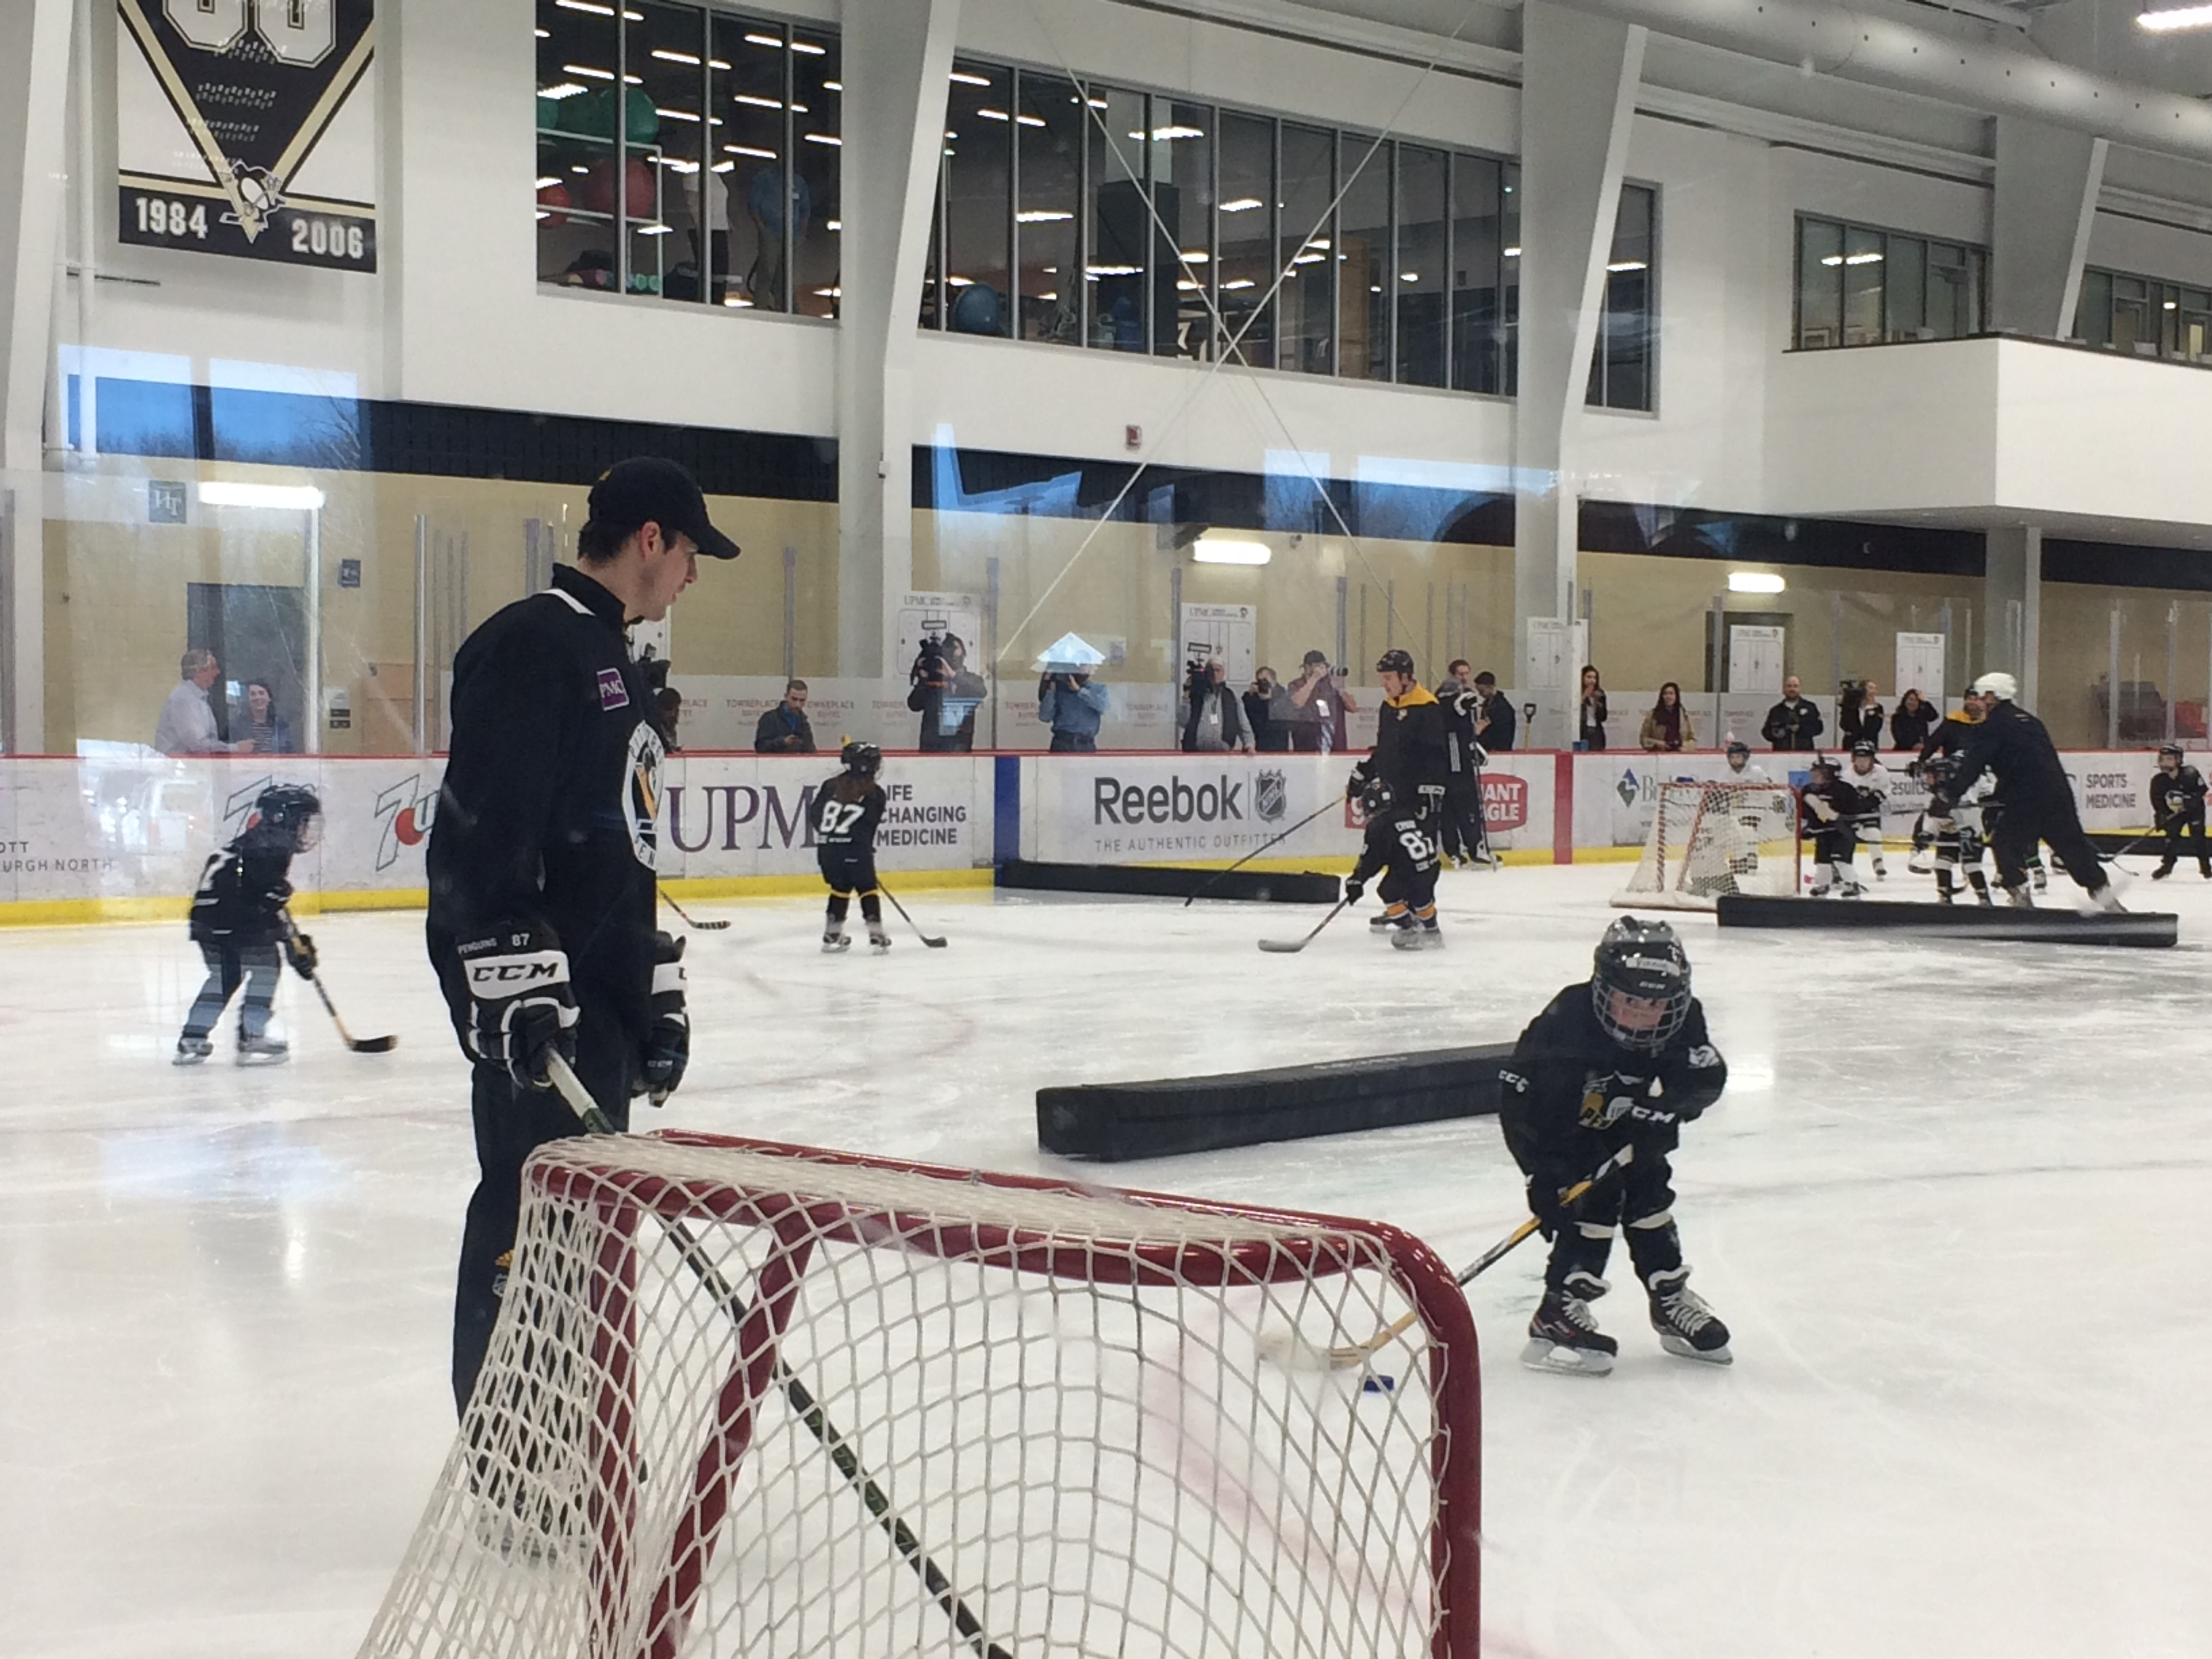 Sidney Crosby watching a small child on the breakaway